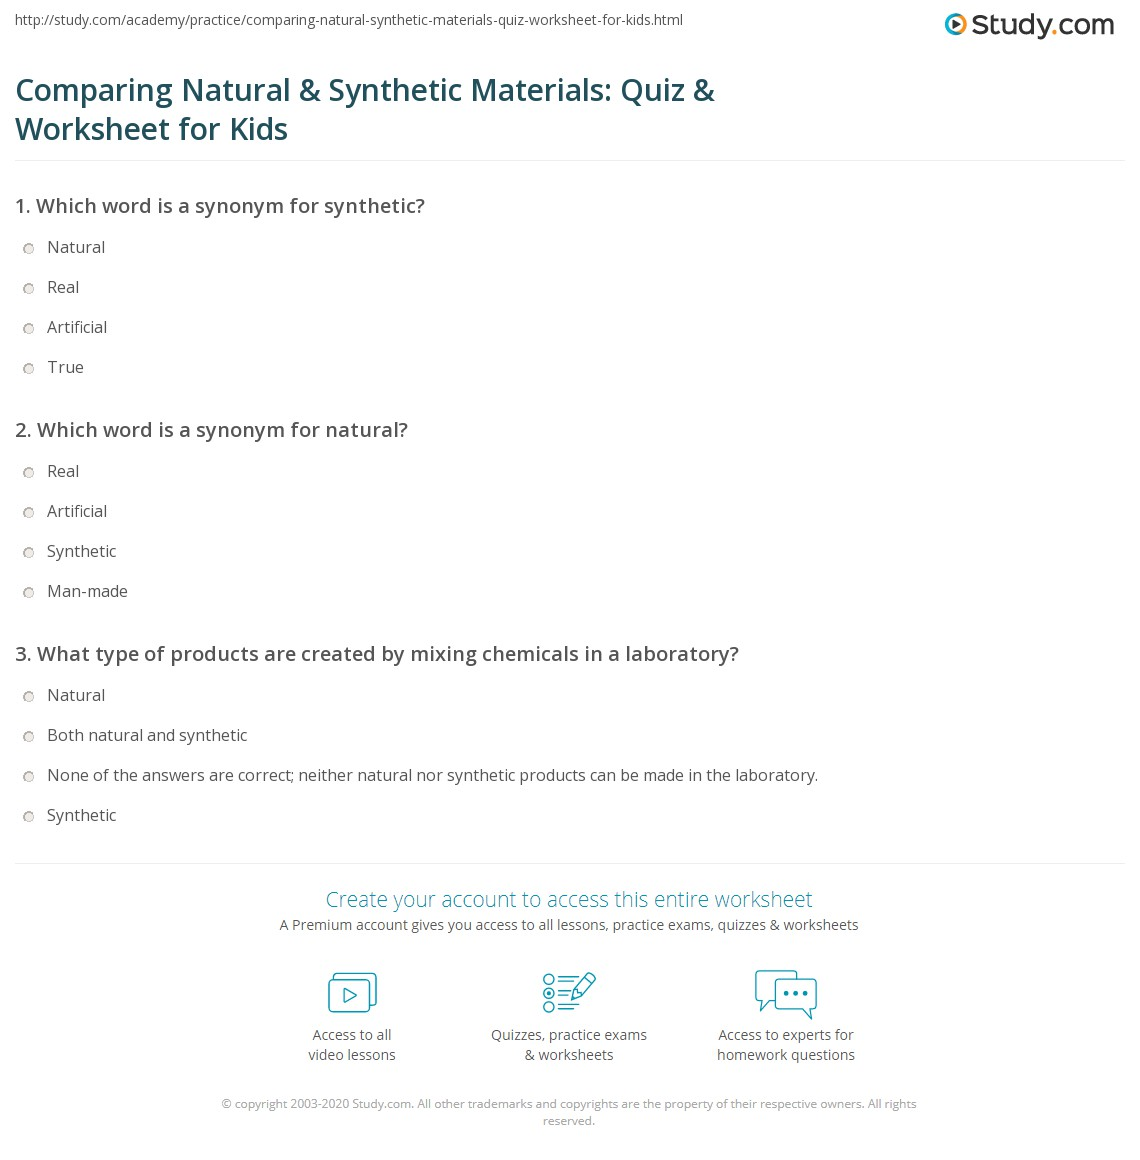 Comparing Natural Synthetic Materials Quiz Worksheet For Kids